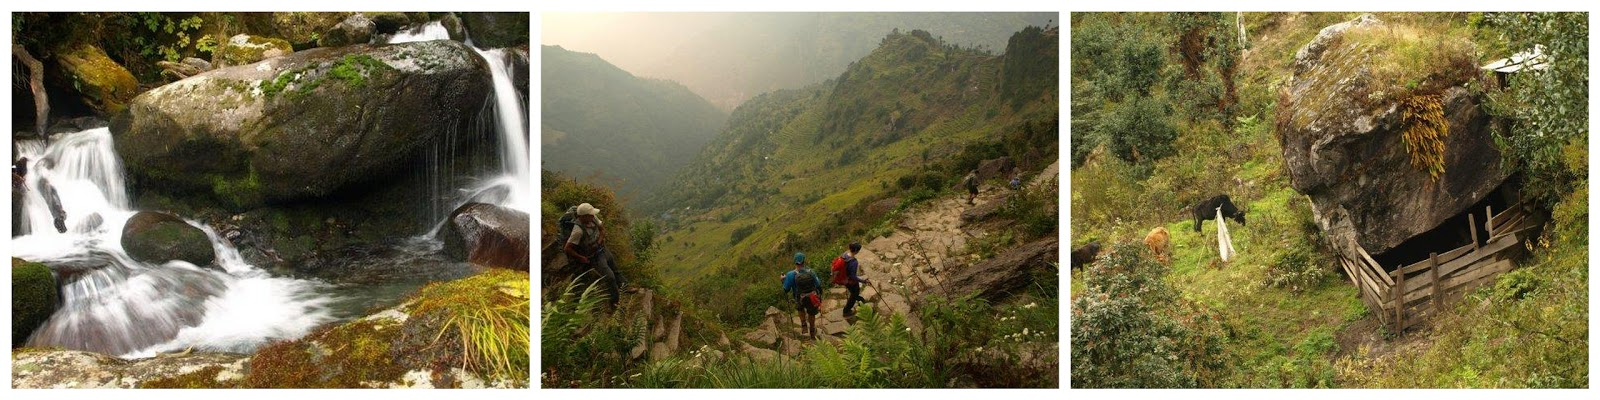 Living Bigger with Colostomy: Nepal 2012 Lost in the Dark